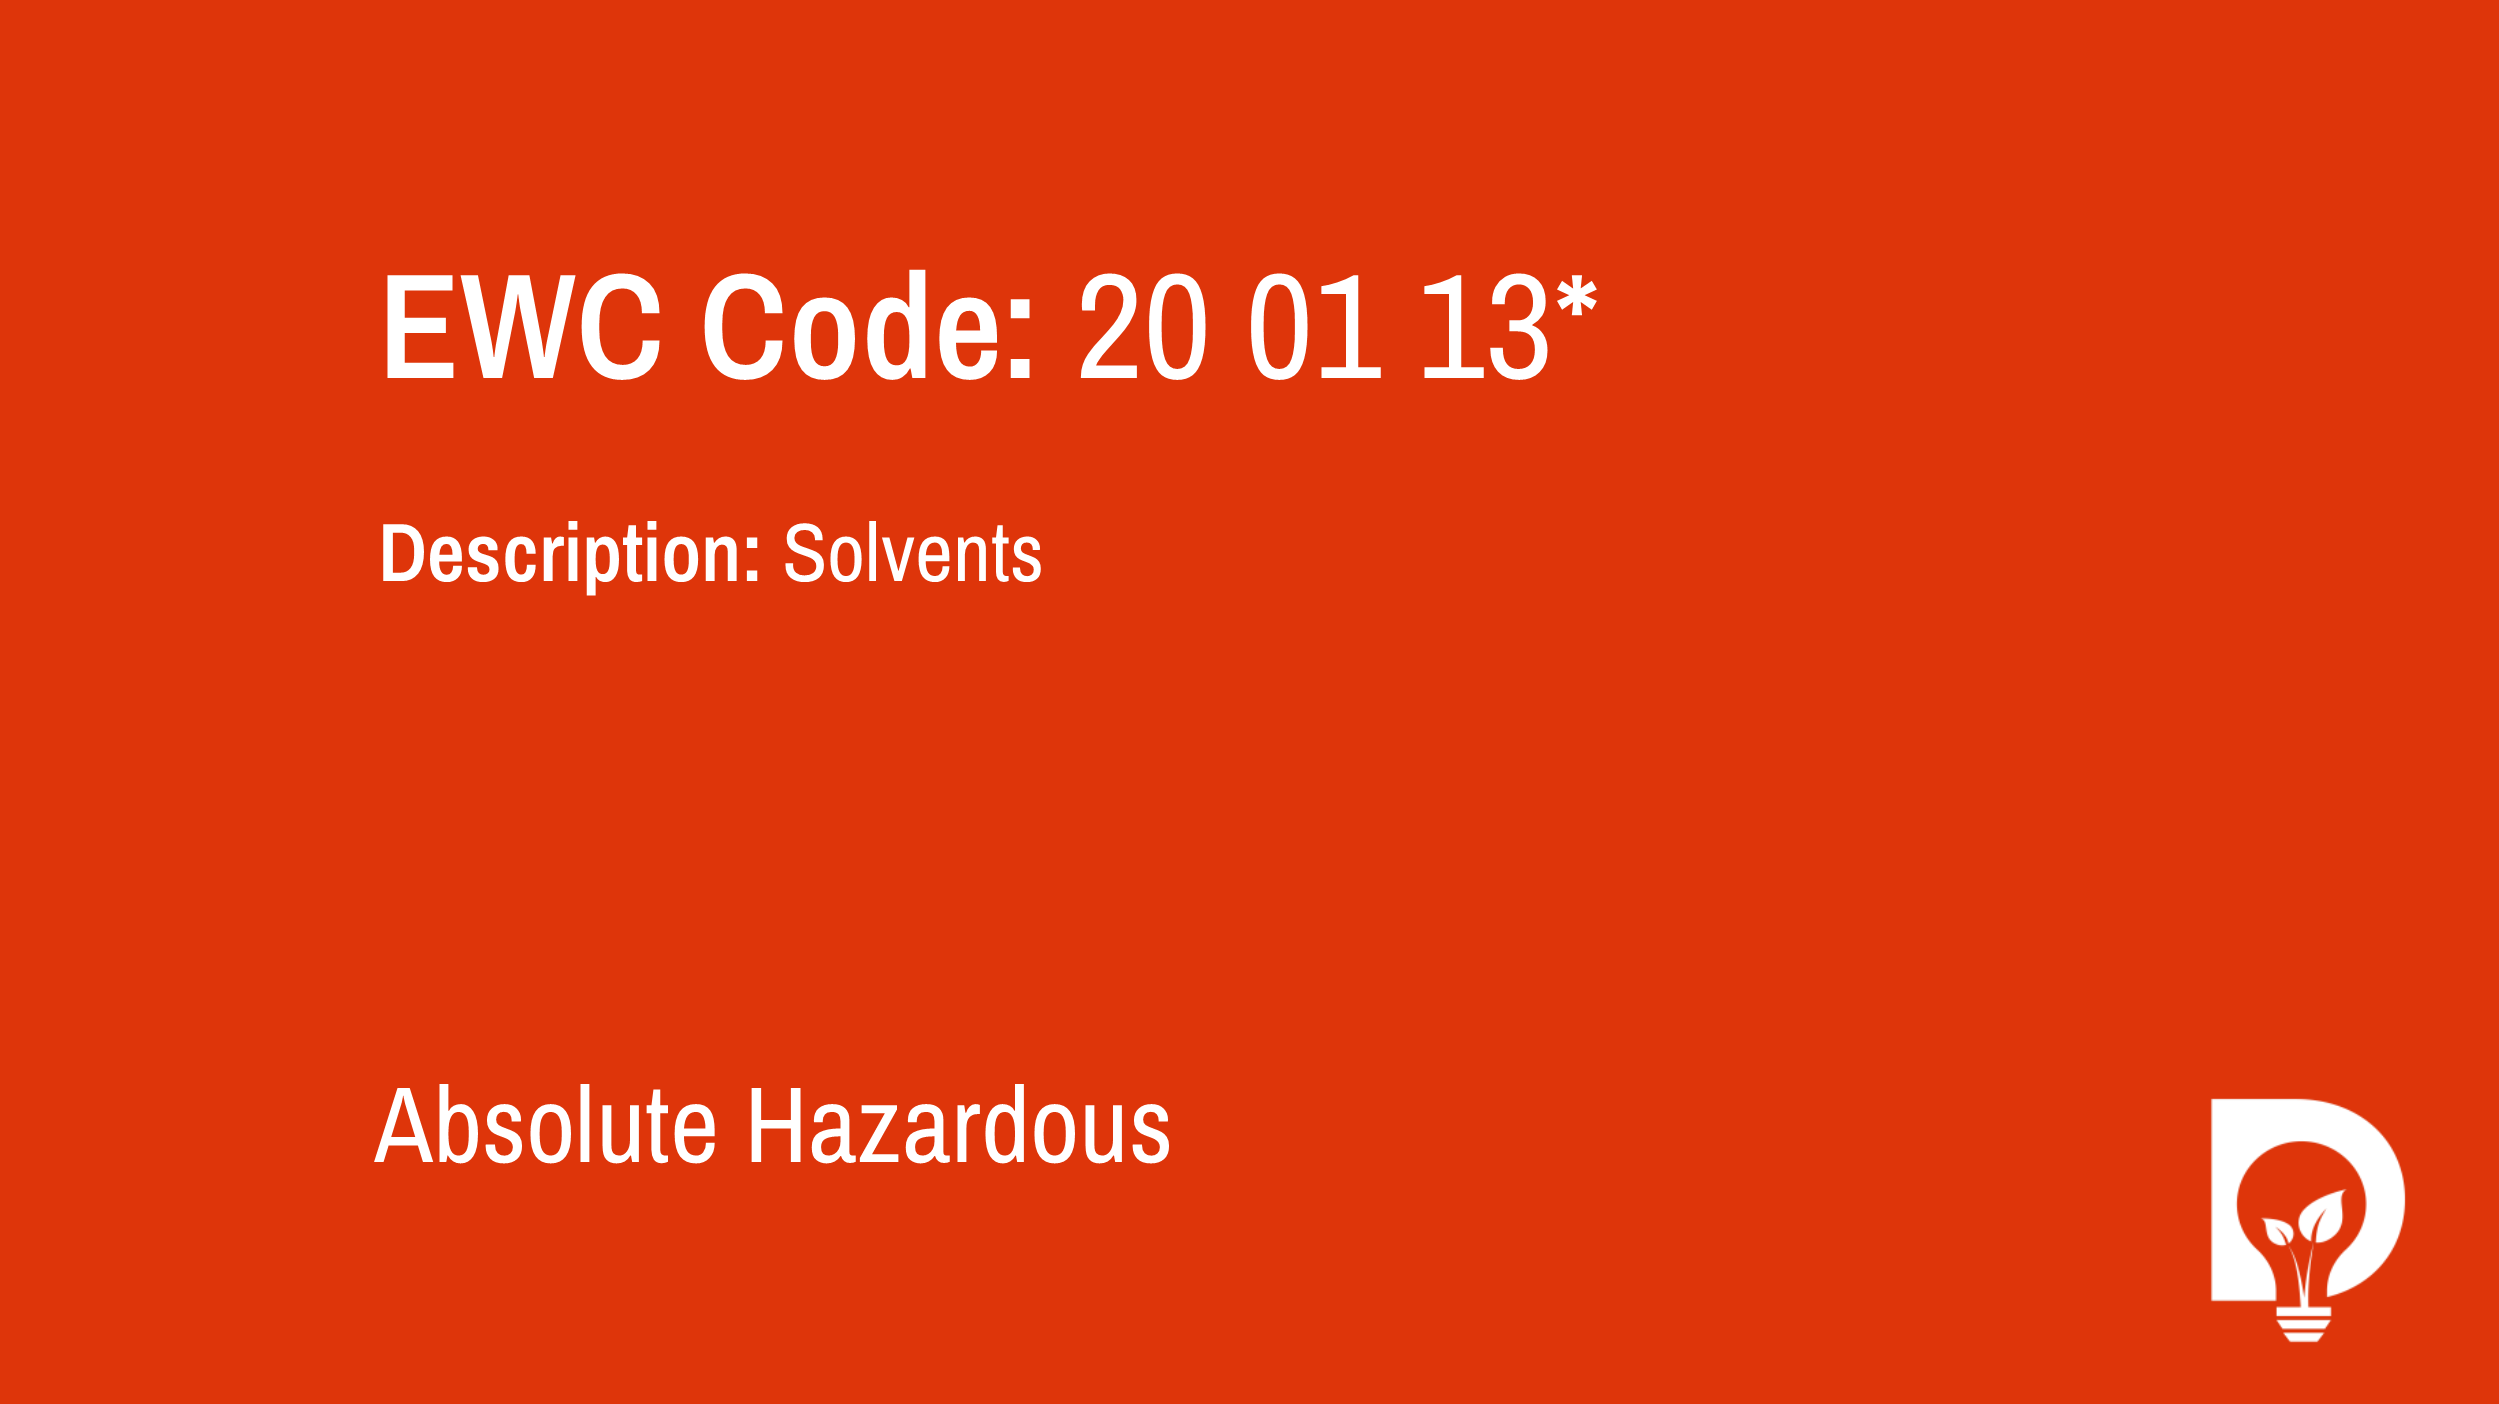 EWC Code: 20 01 13* - solvents. Type: Absolute Hazardous. Image by Dsposal